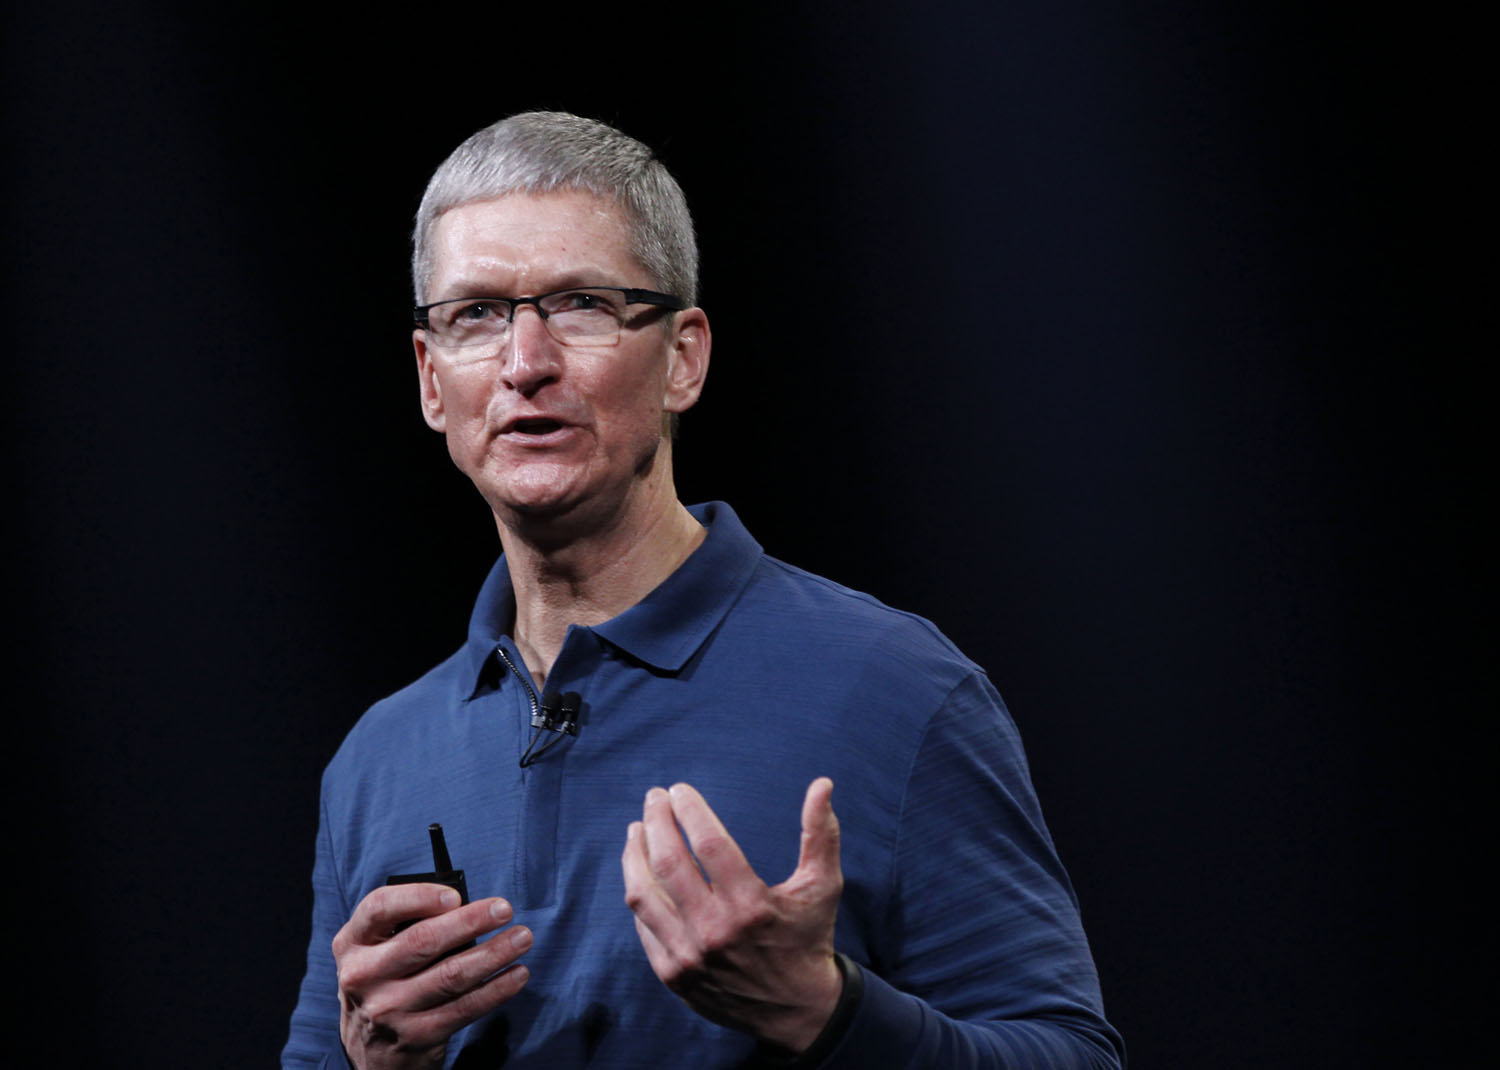 Apple CEO Tim Cook speaks to the audience during an Apple event in San Jose, Calif., on Oct. 23, 2012.